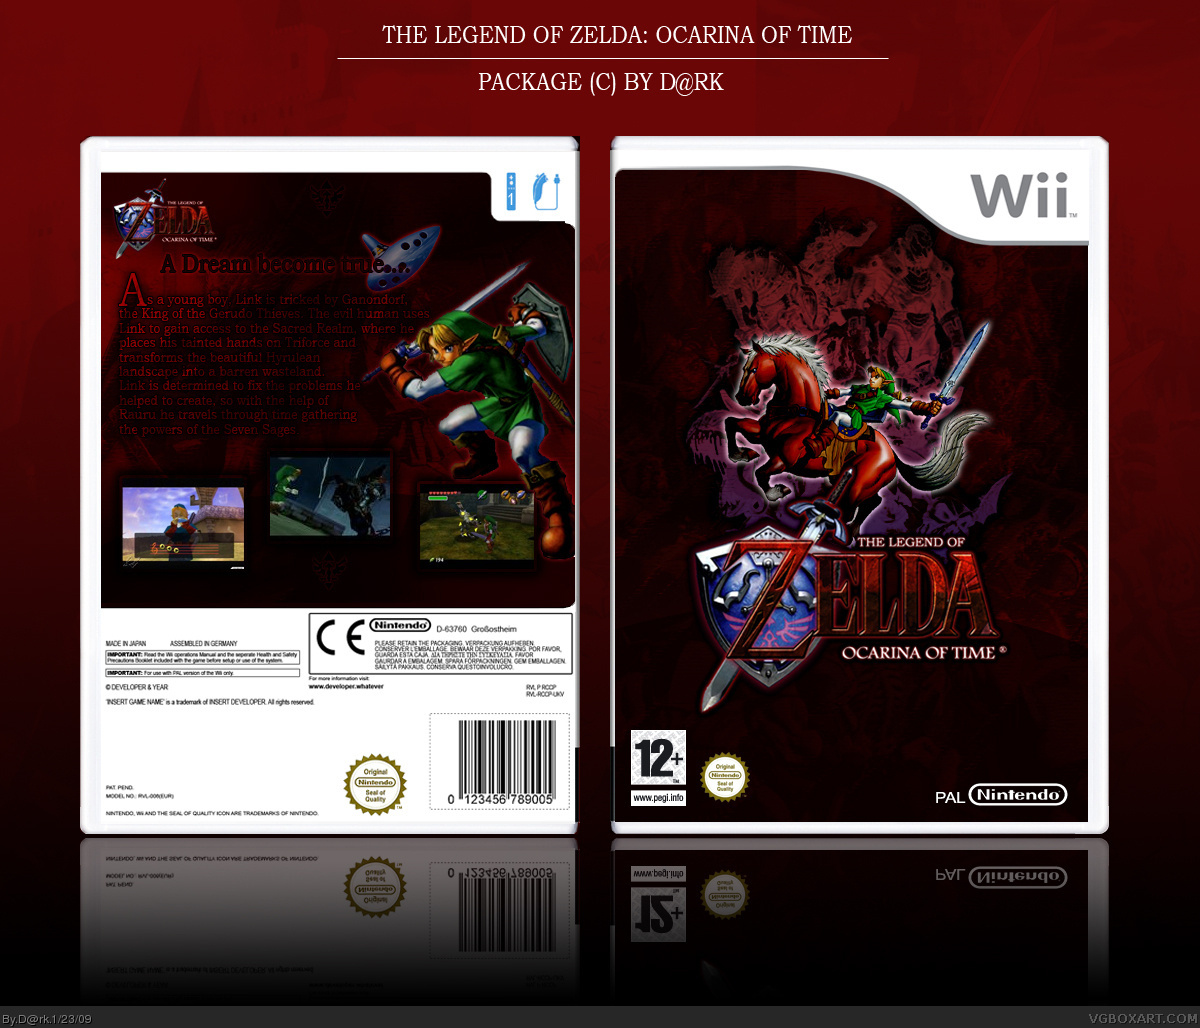 The Legend Of Zelda Ocarina Of Time Wii Box Art Cover By D Rk